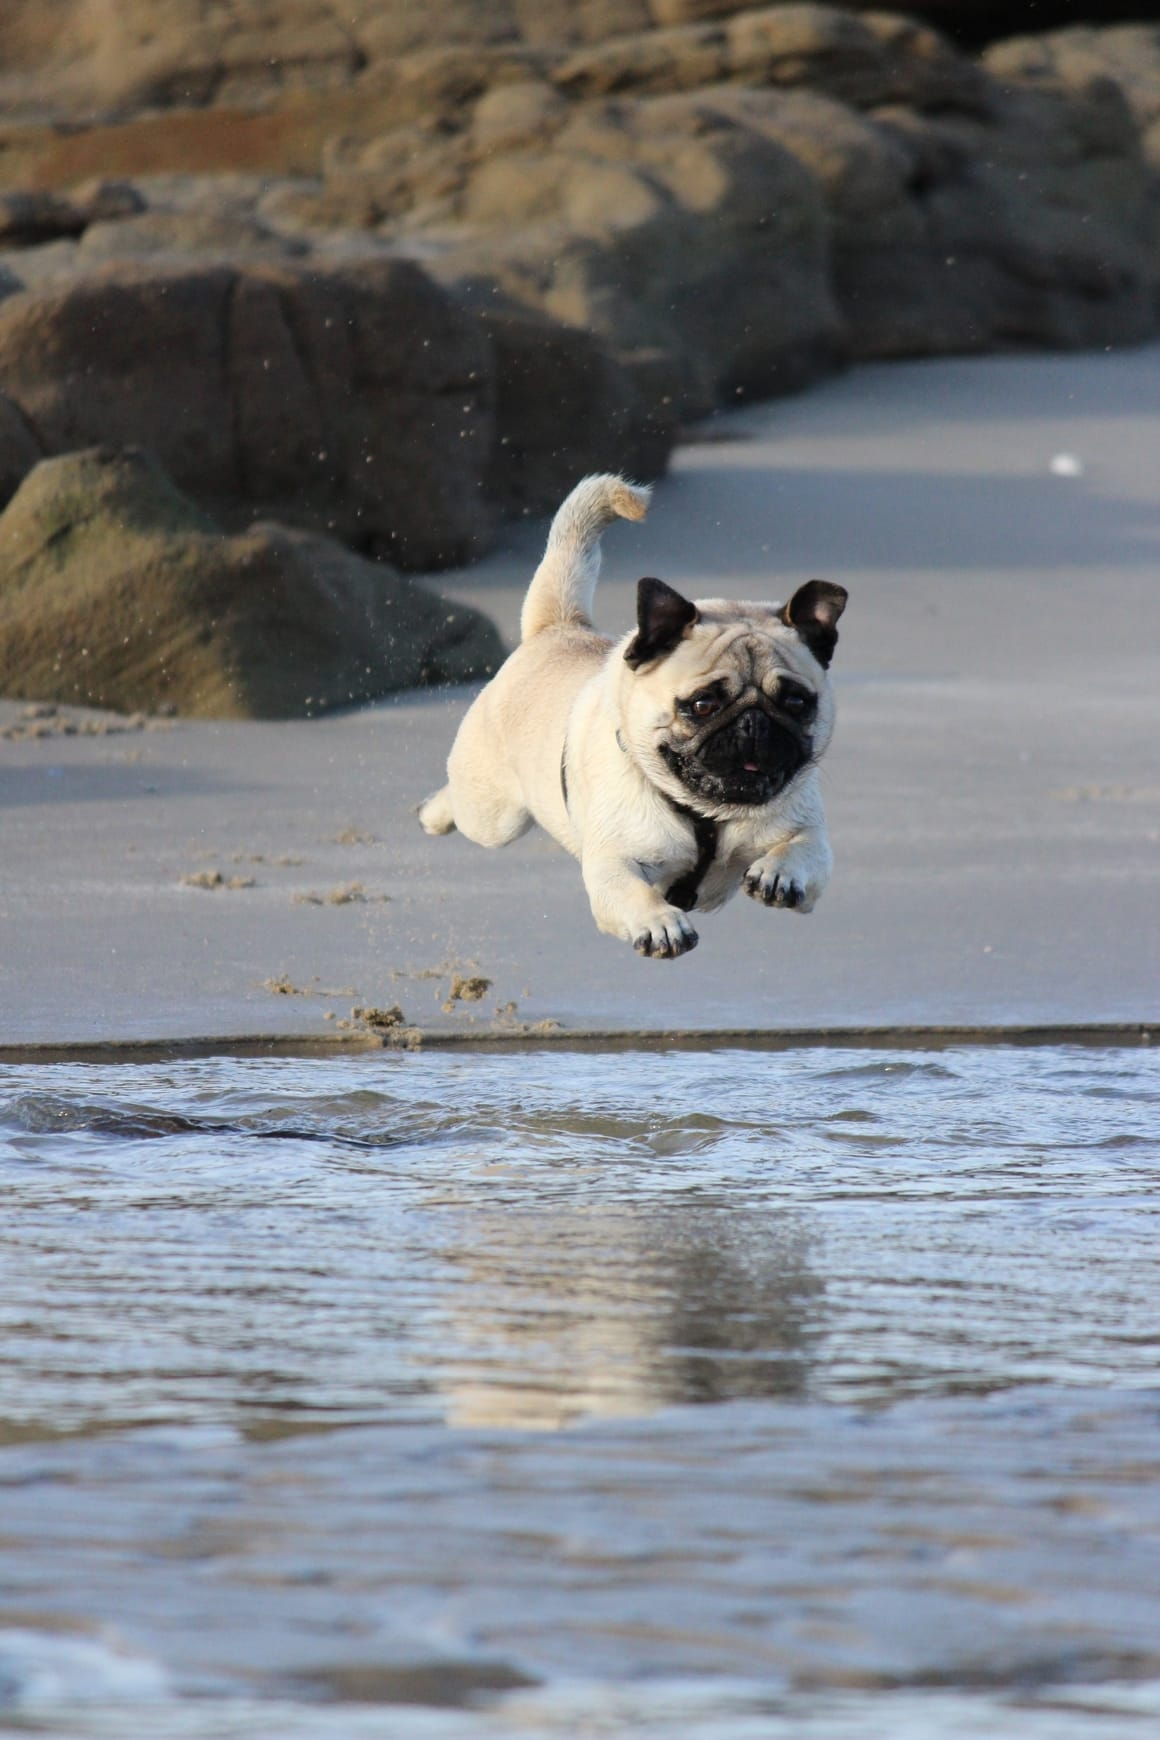 A young pup jumping on the beach after being let out of her puppy crate